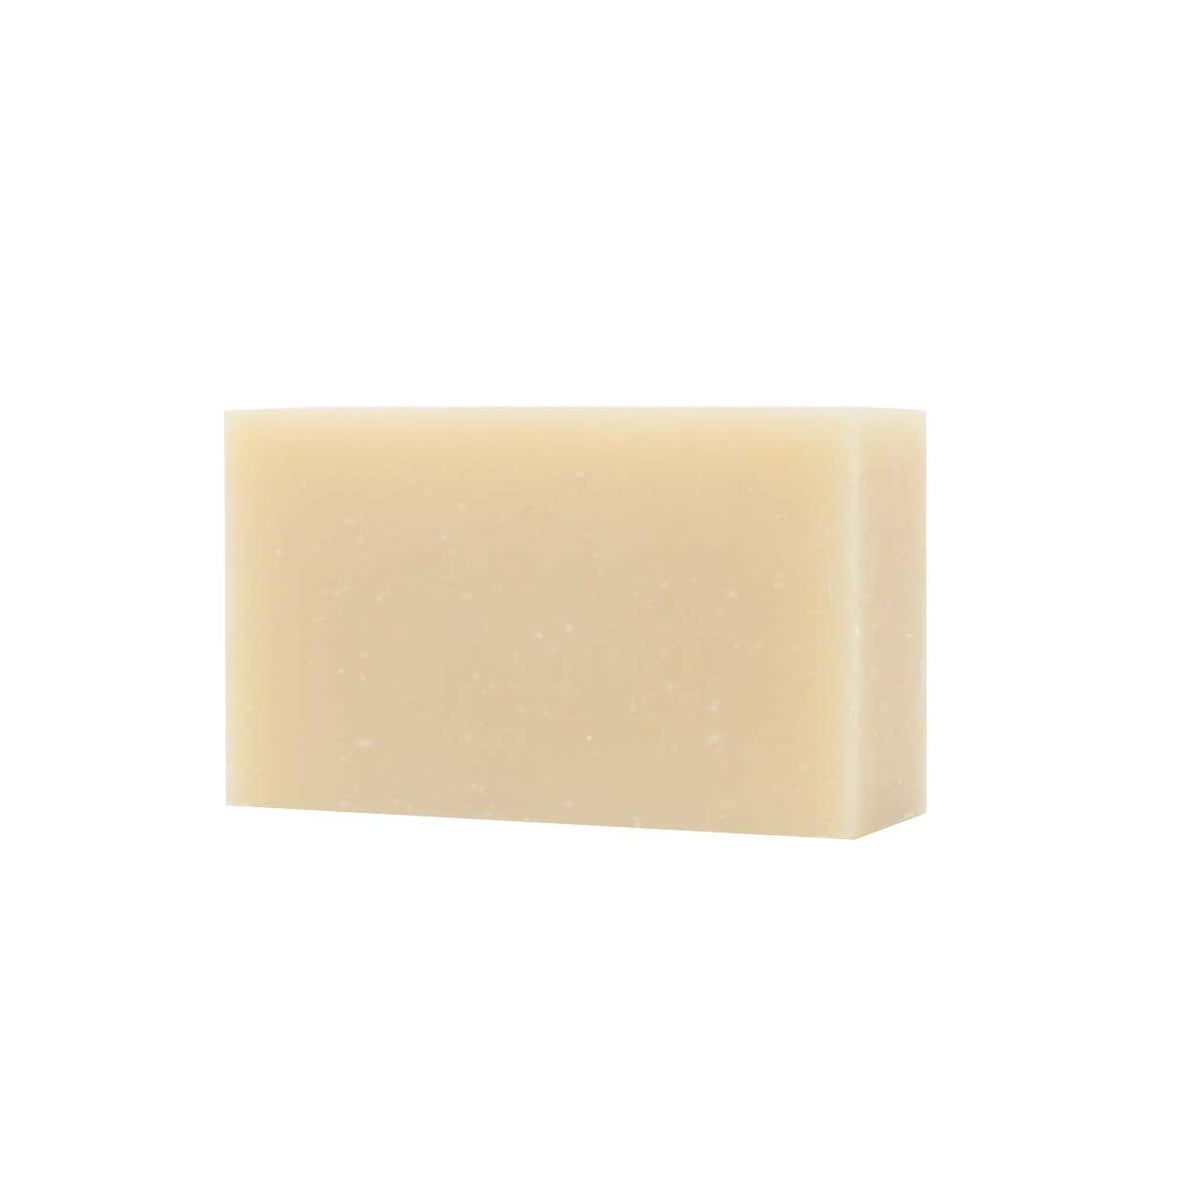 Mint Condition Shampoo Bar - 3 Pack